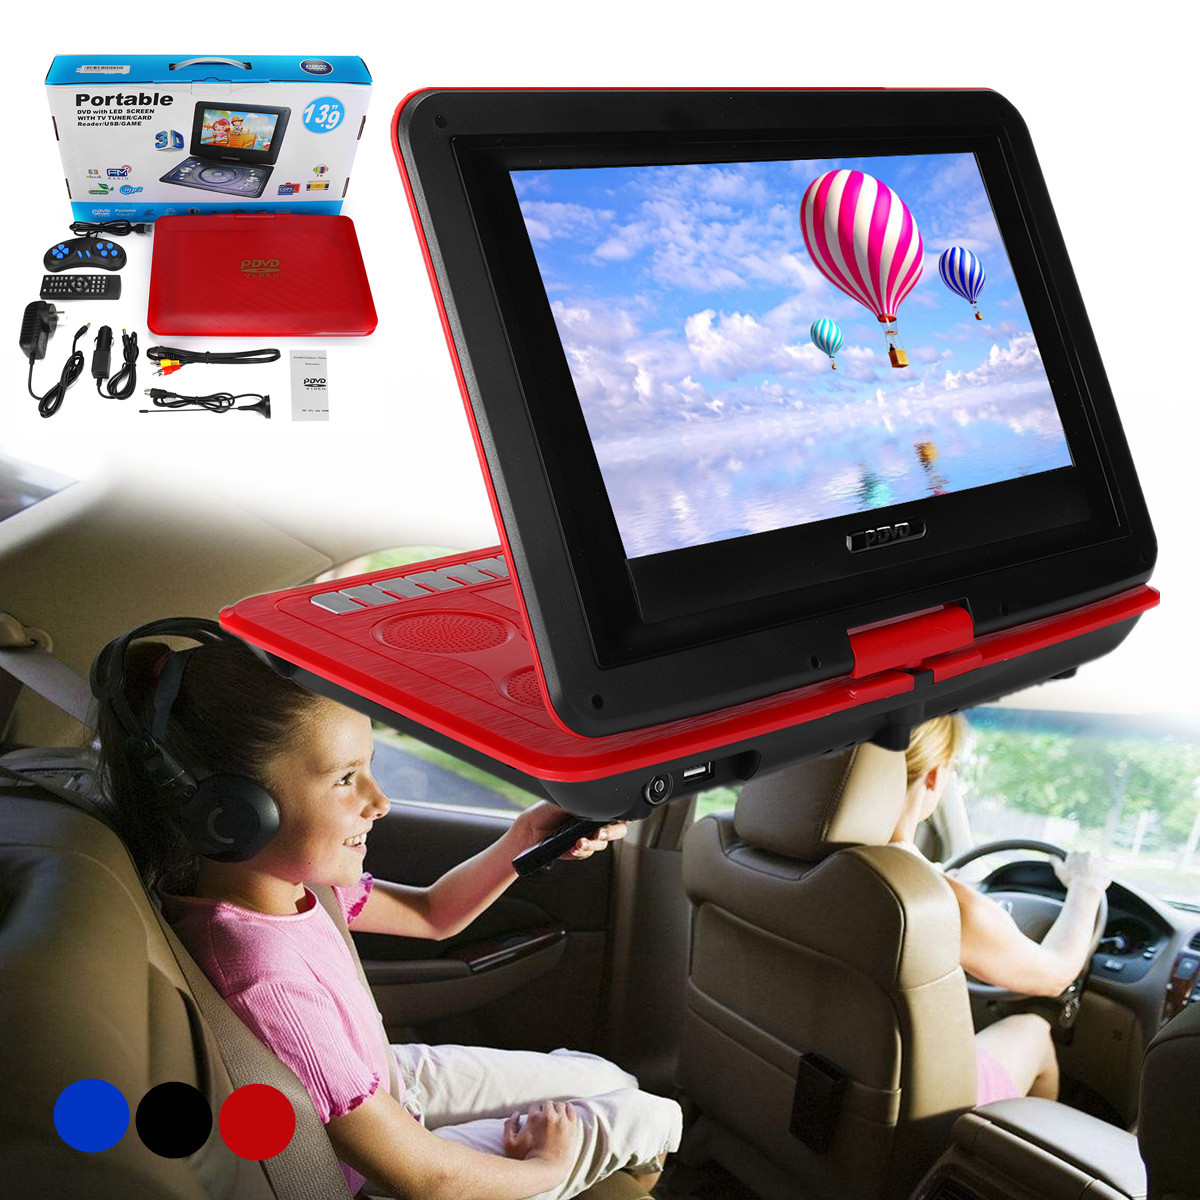 10.2 Inch TFT LCD Screen Portable Recharge TV Reciever Car DVD Player